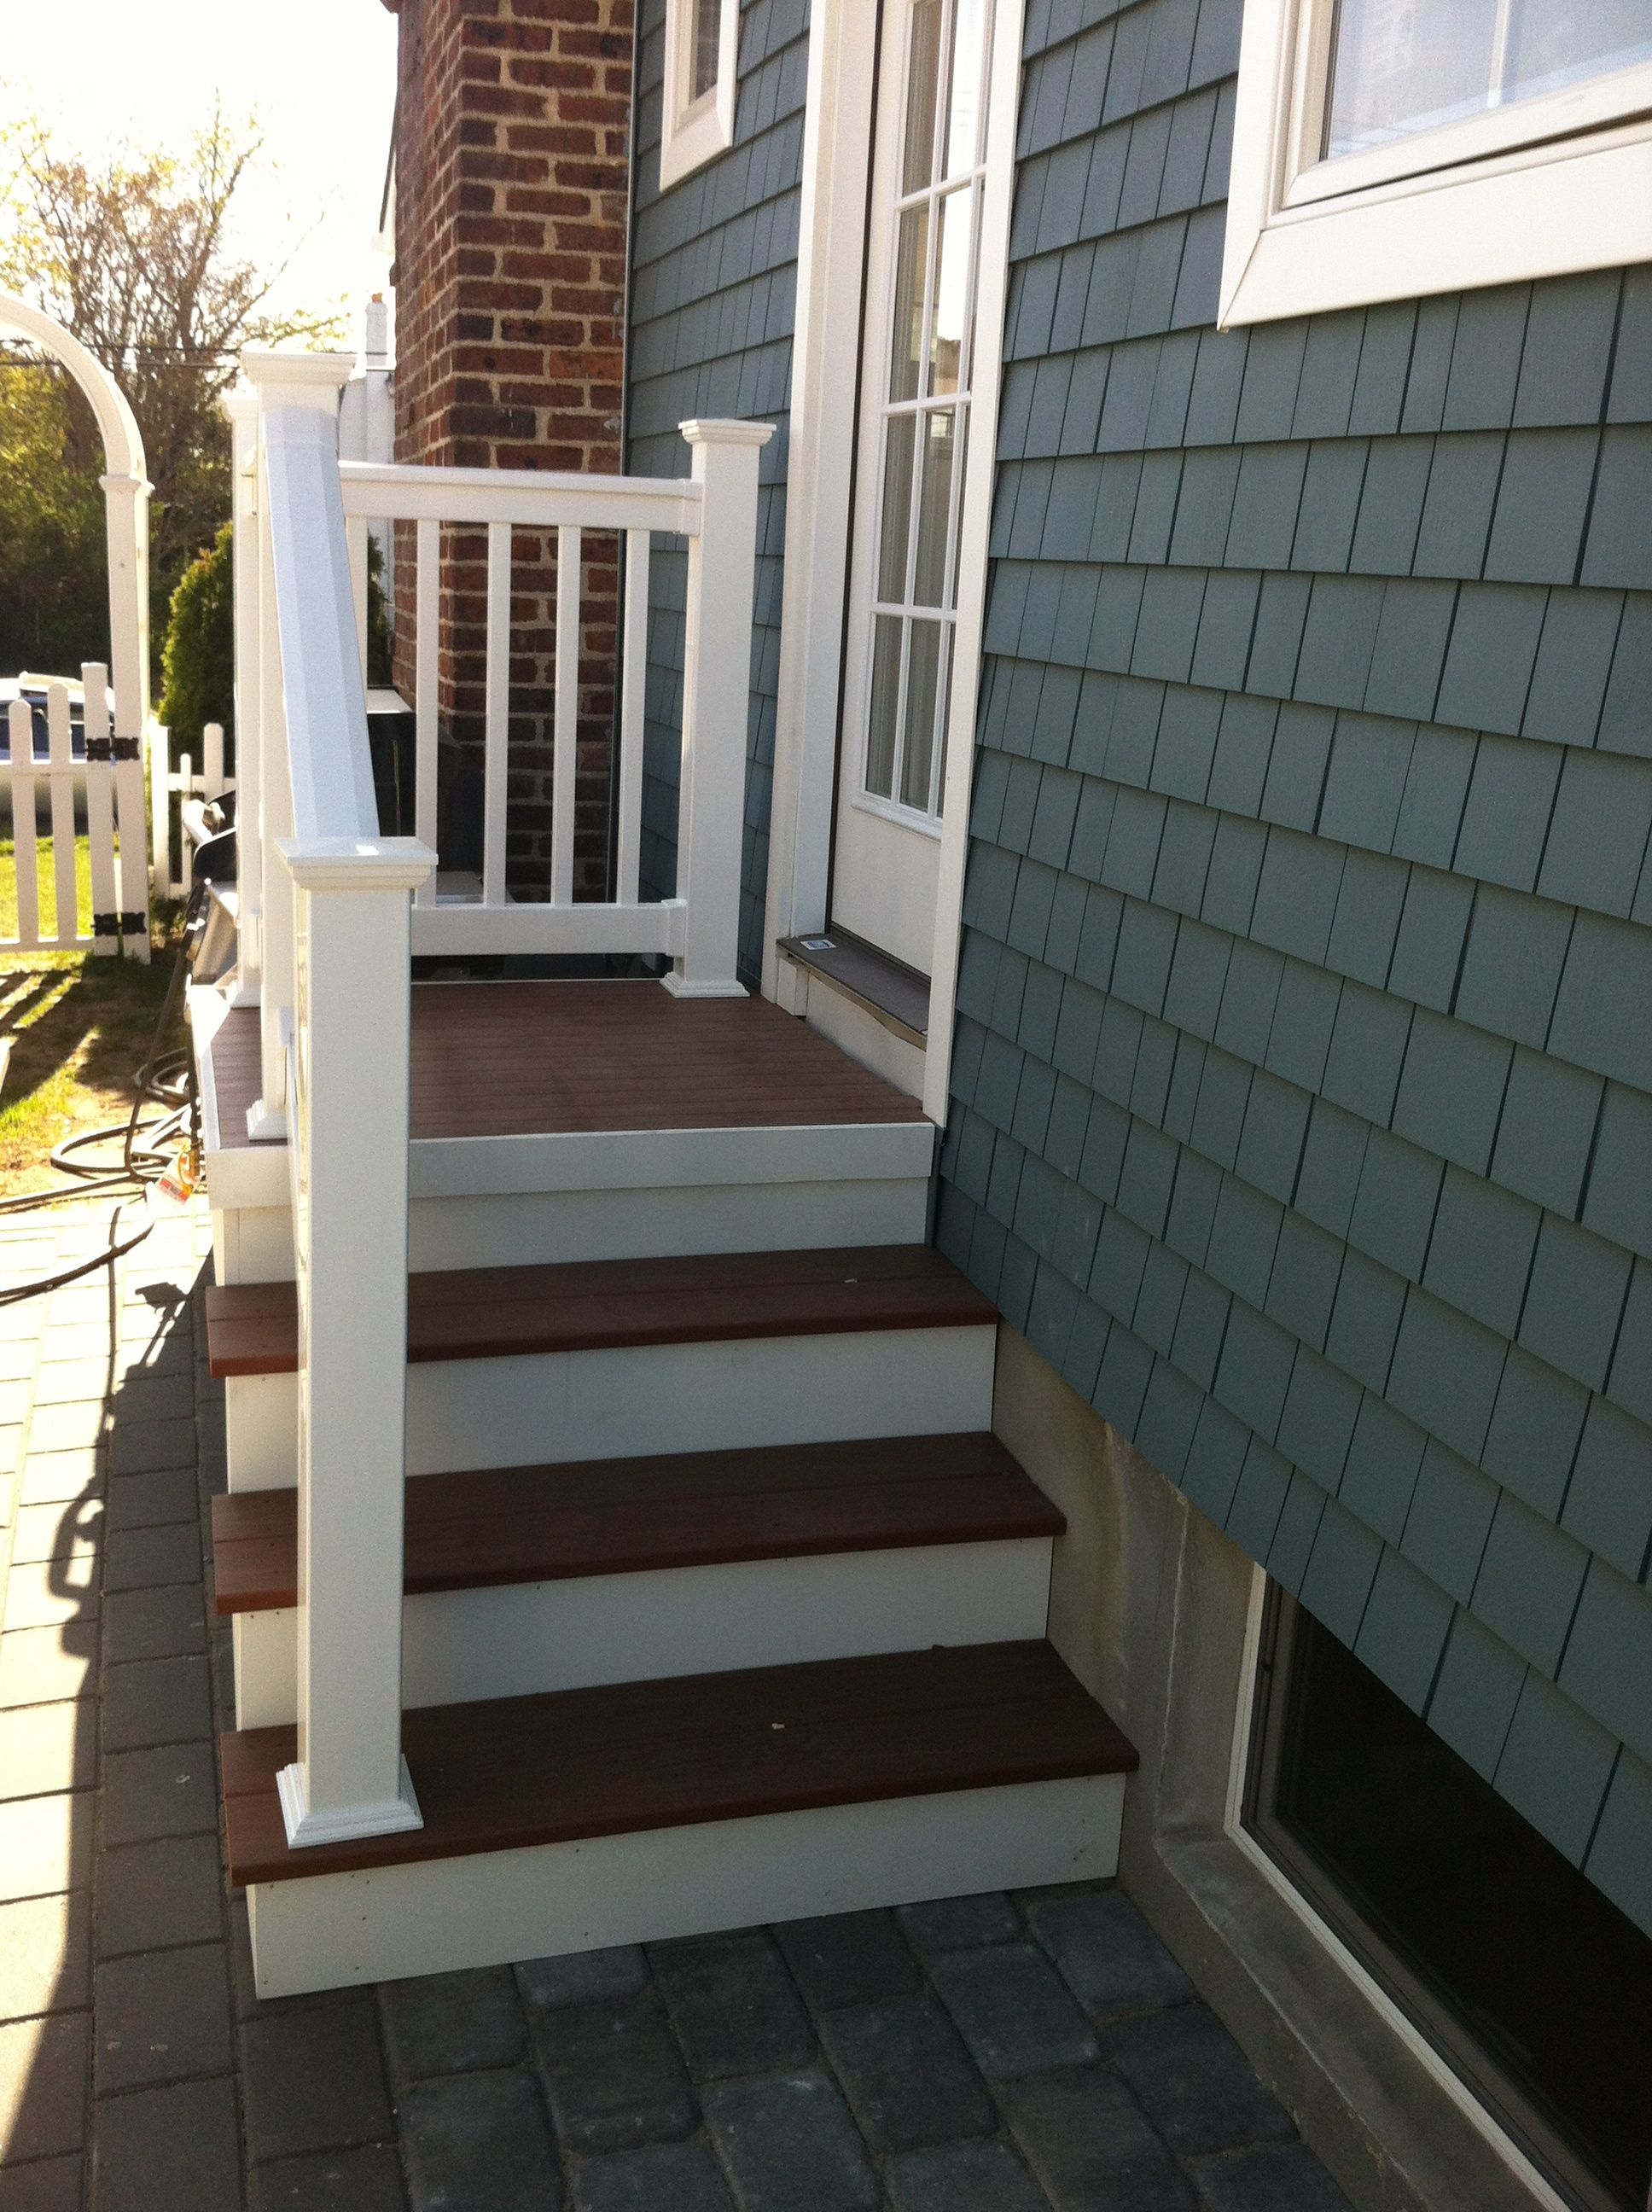 Outdoor Steps With Railing Side Entrance Backdoor Backyard Nj Carls for 13 Smart Tricks of How to Improve Backyard Steps Ideas